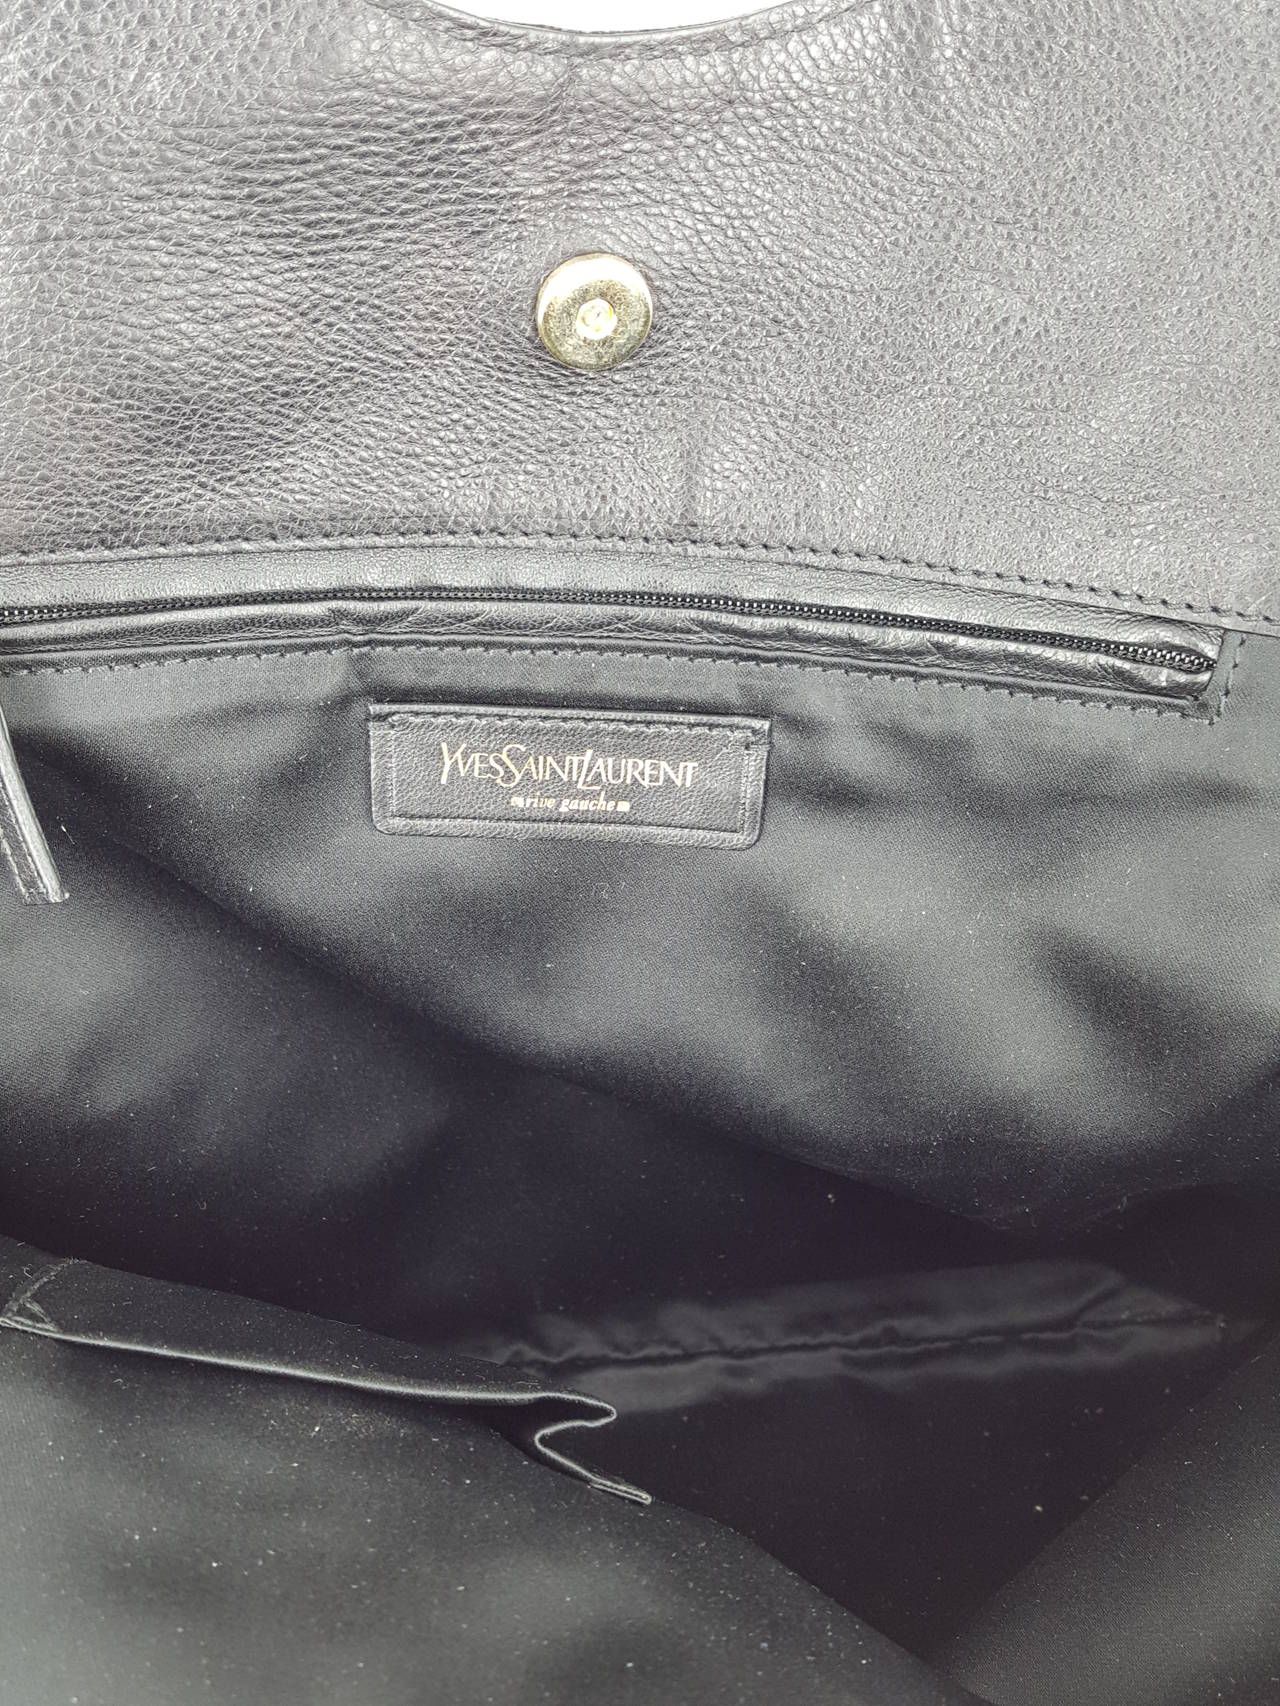 YSL Yves Saint Laurent Black Leather Tribute Bag. For Sale 3